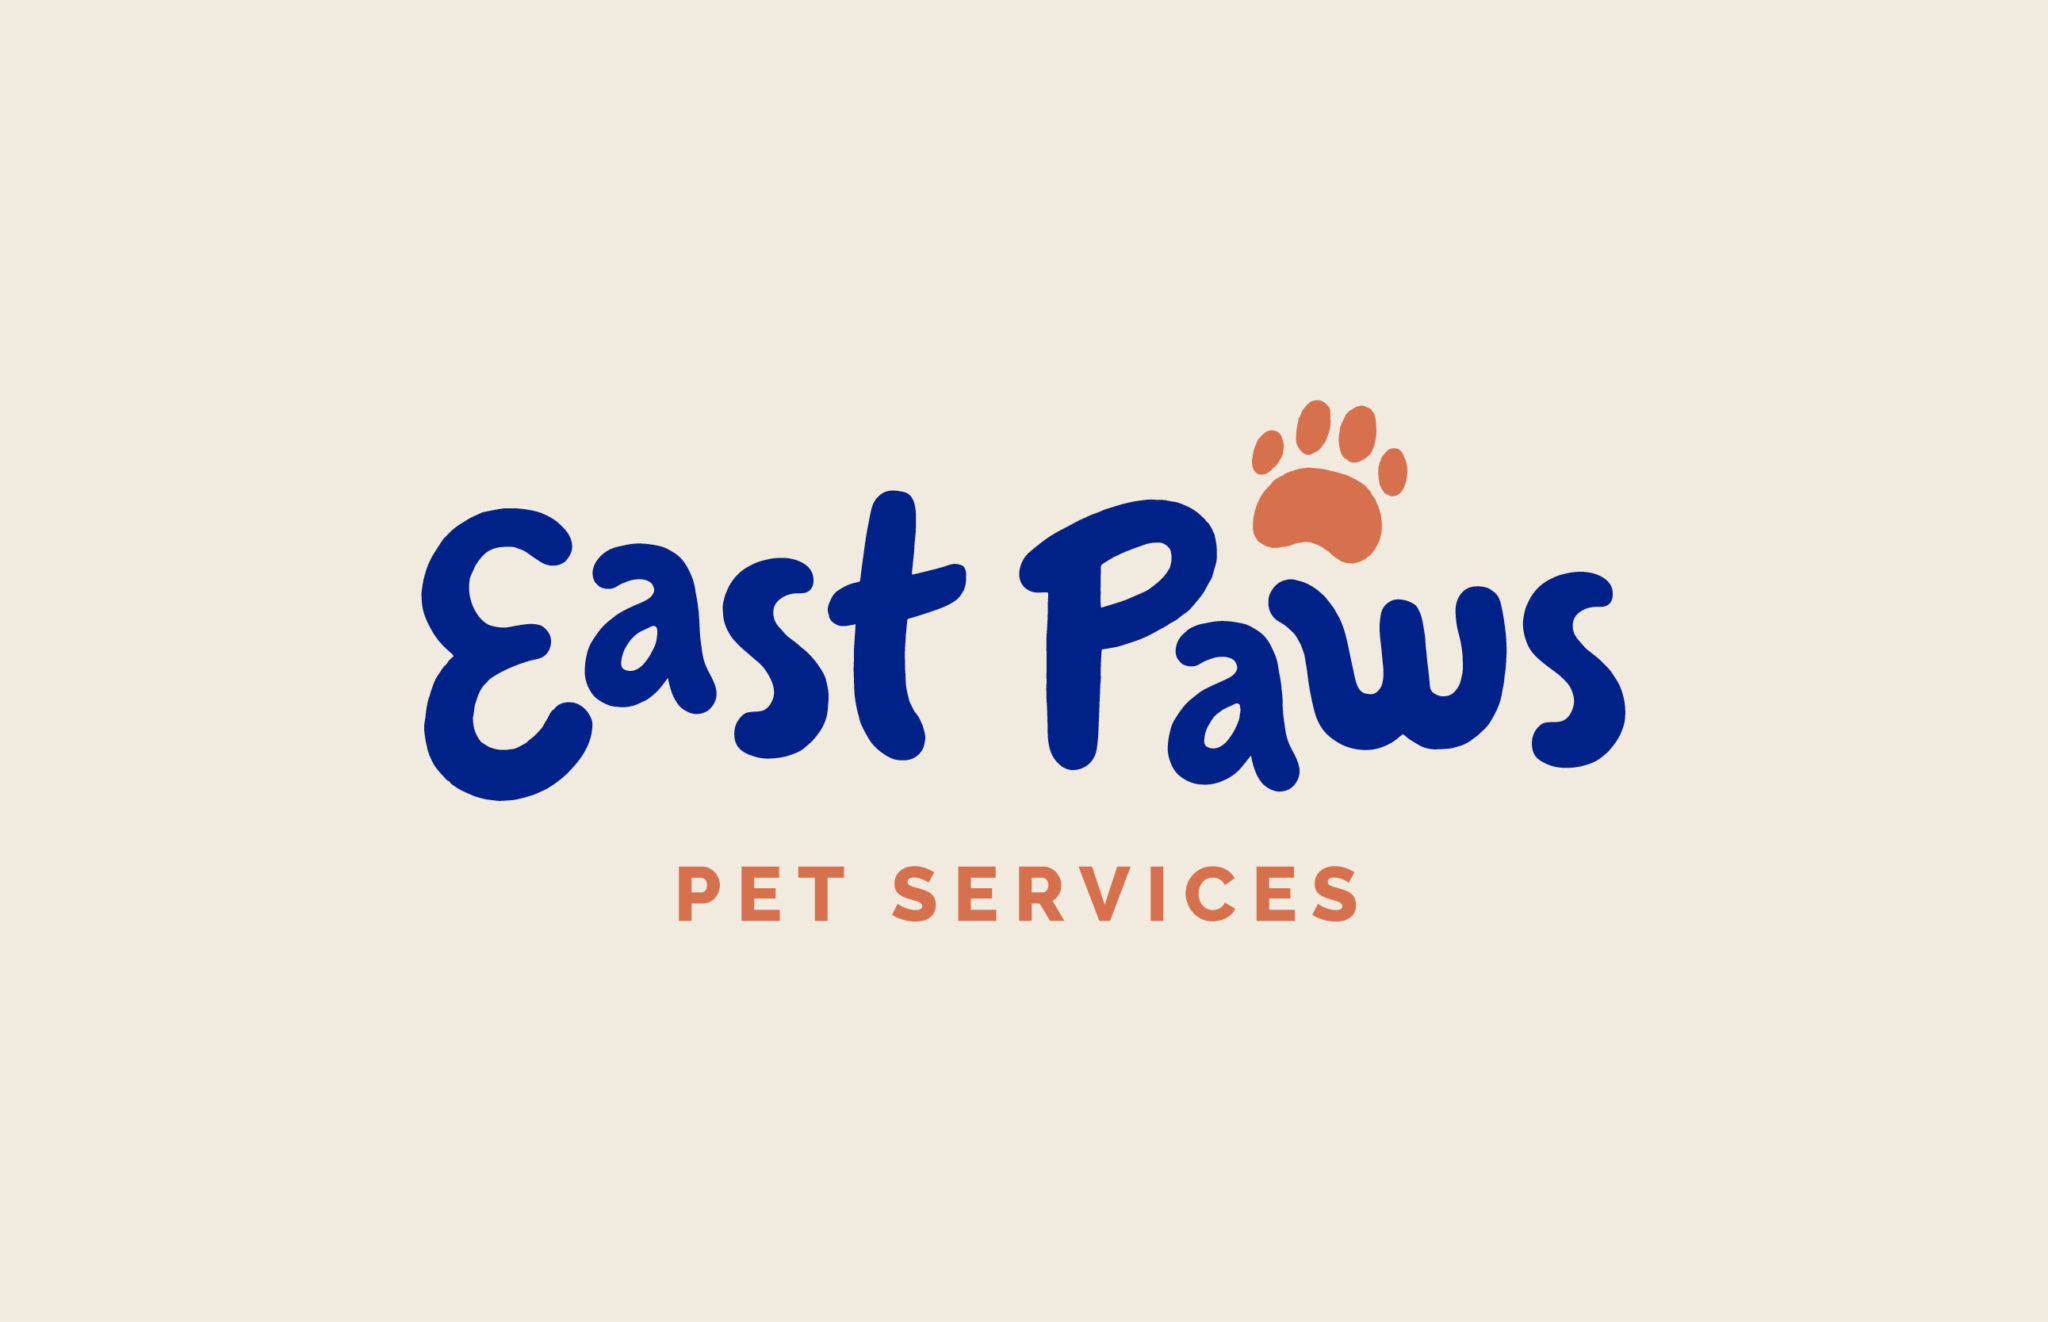 logo design for East Paws Pet Services, done by Dox Design